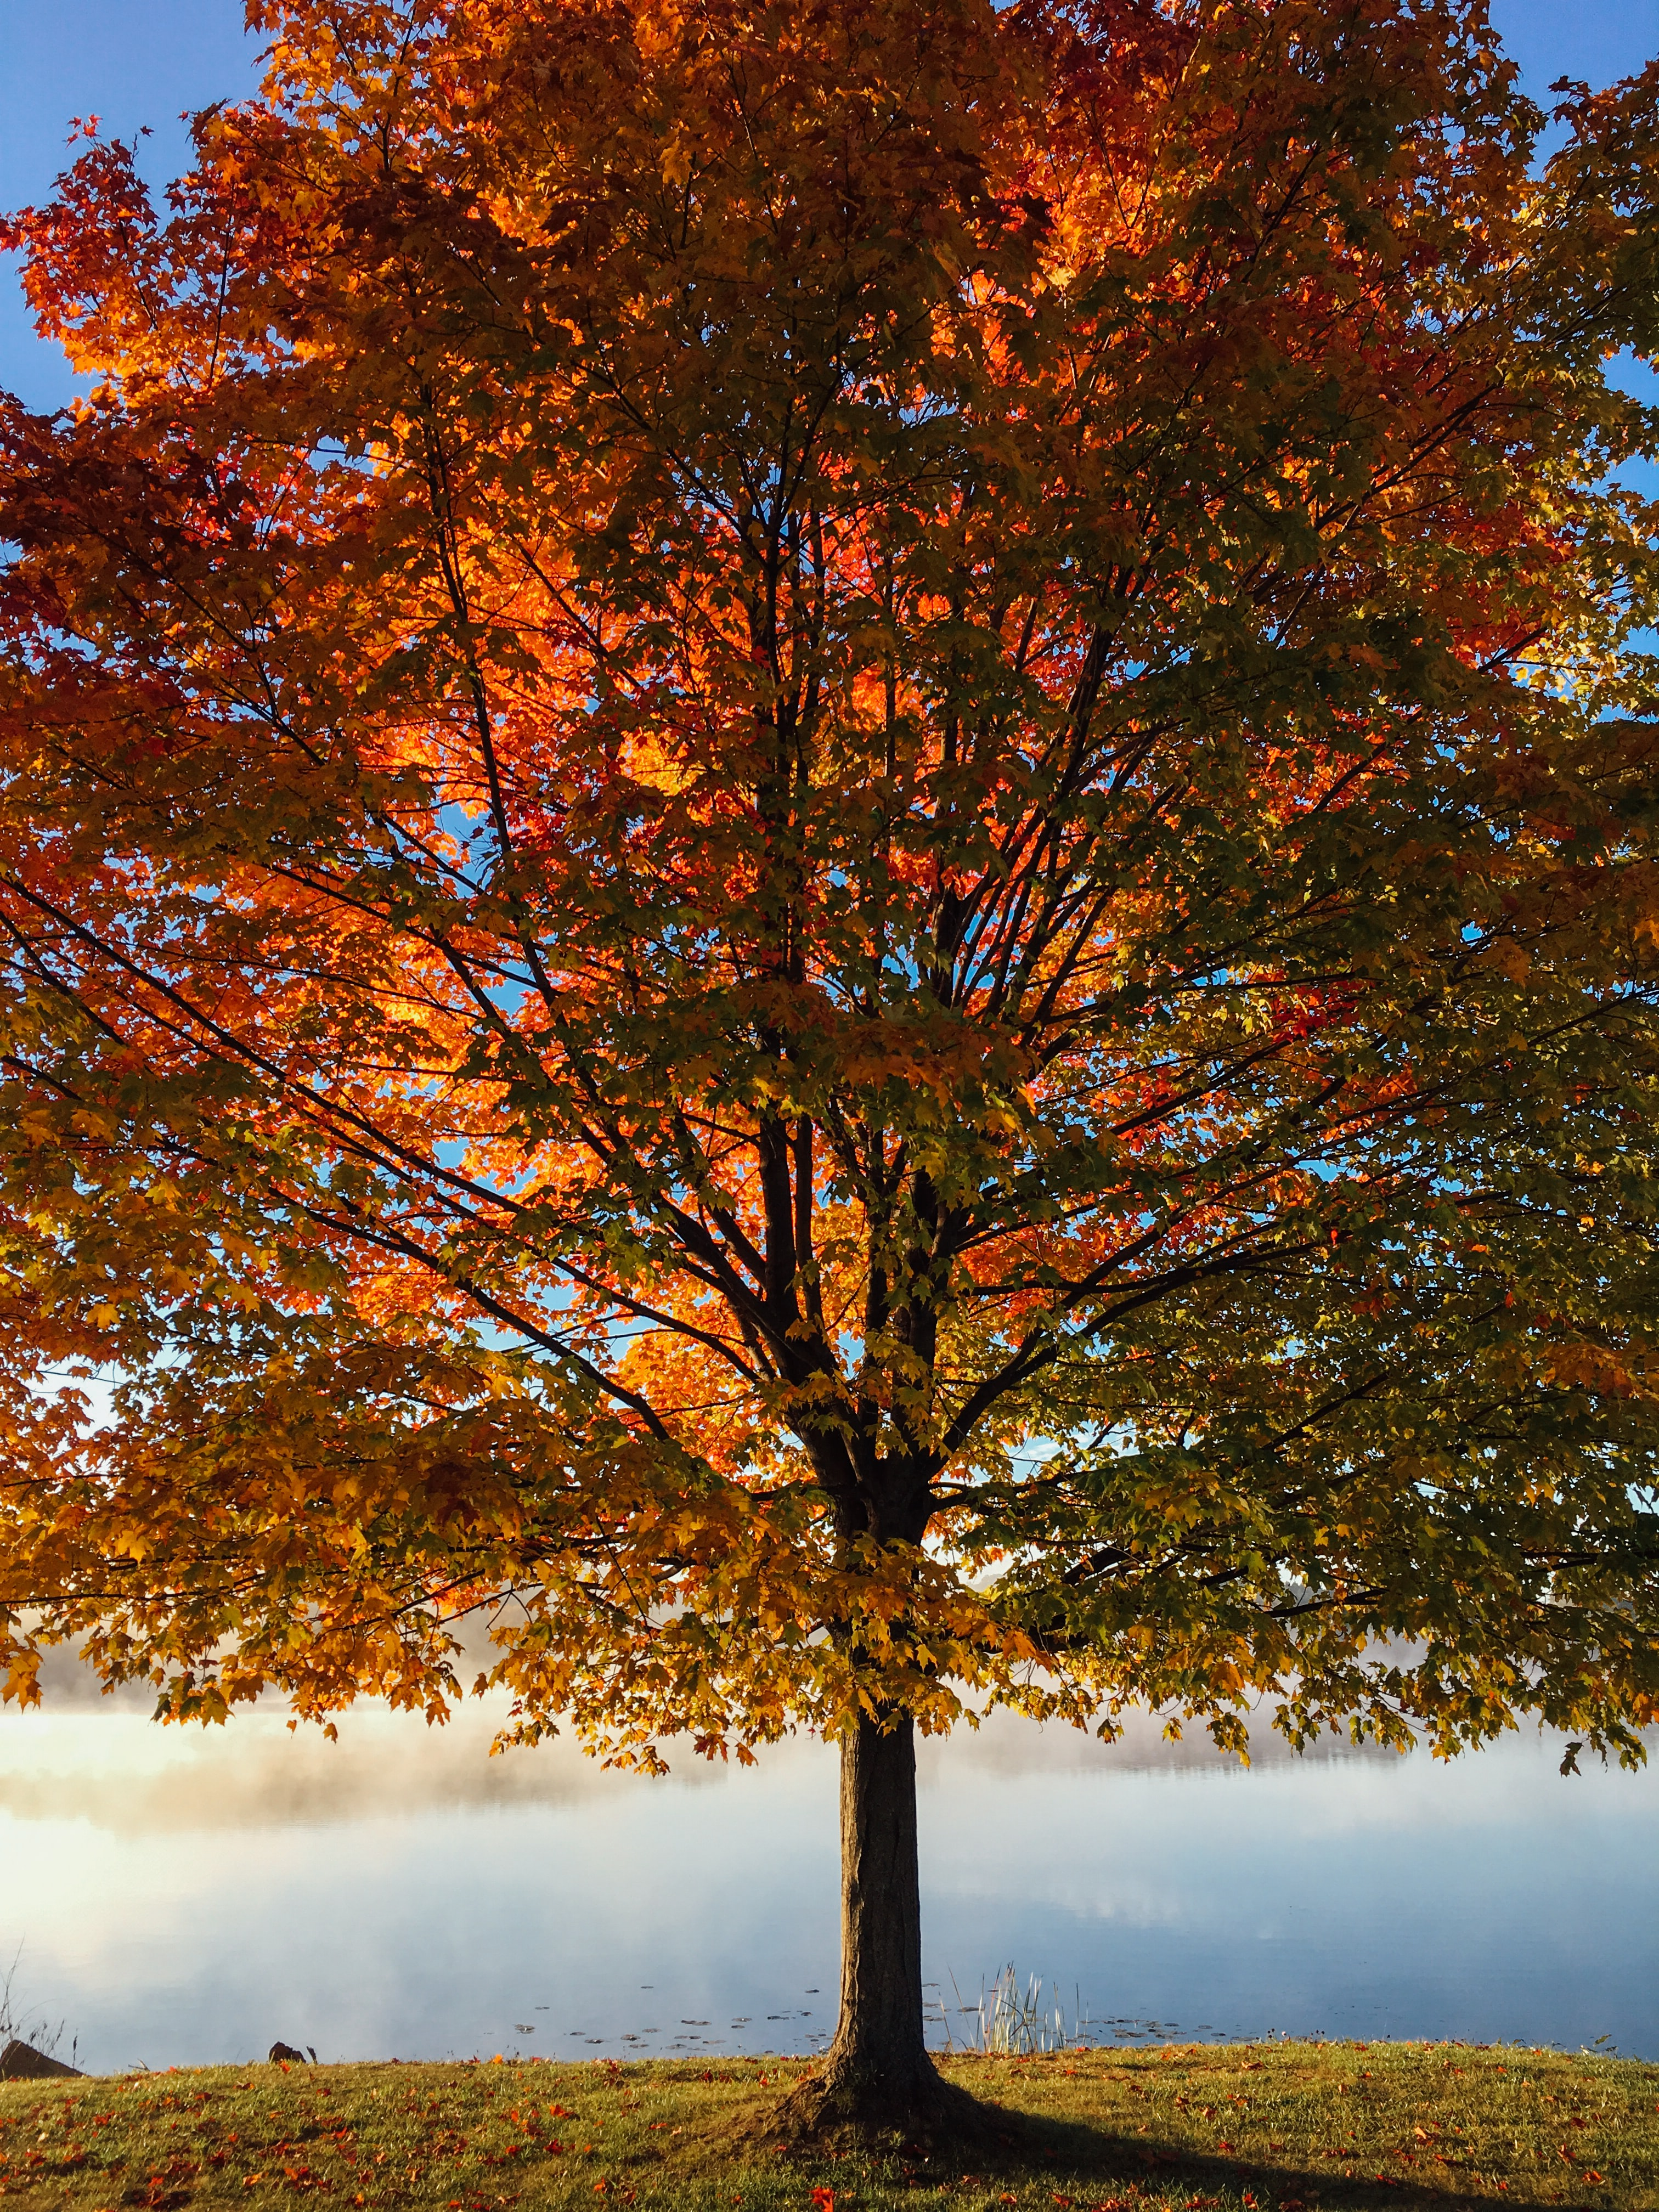 A huge maple tree with orange, red, and green leaves